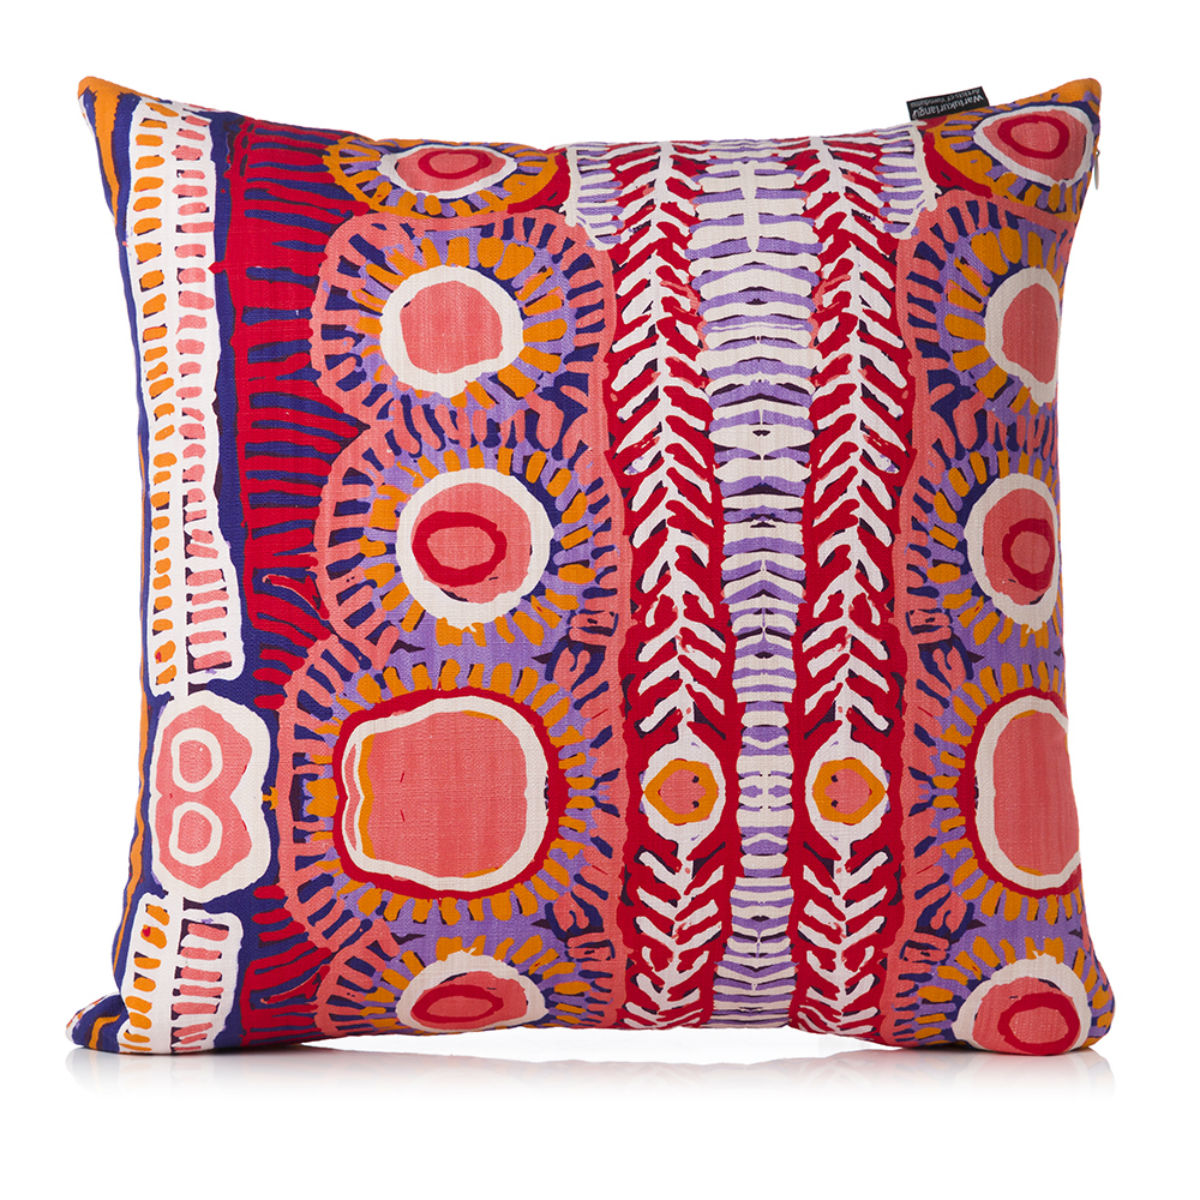 Alperstein Designs -- Australia: Murdie Morris Cushion Cover